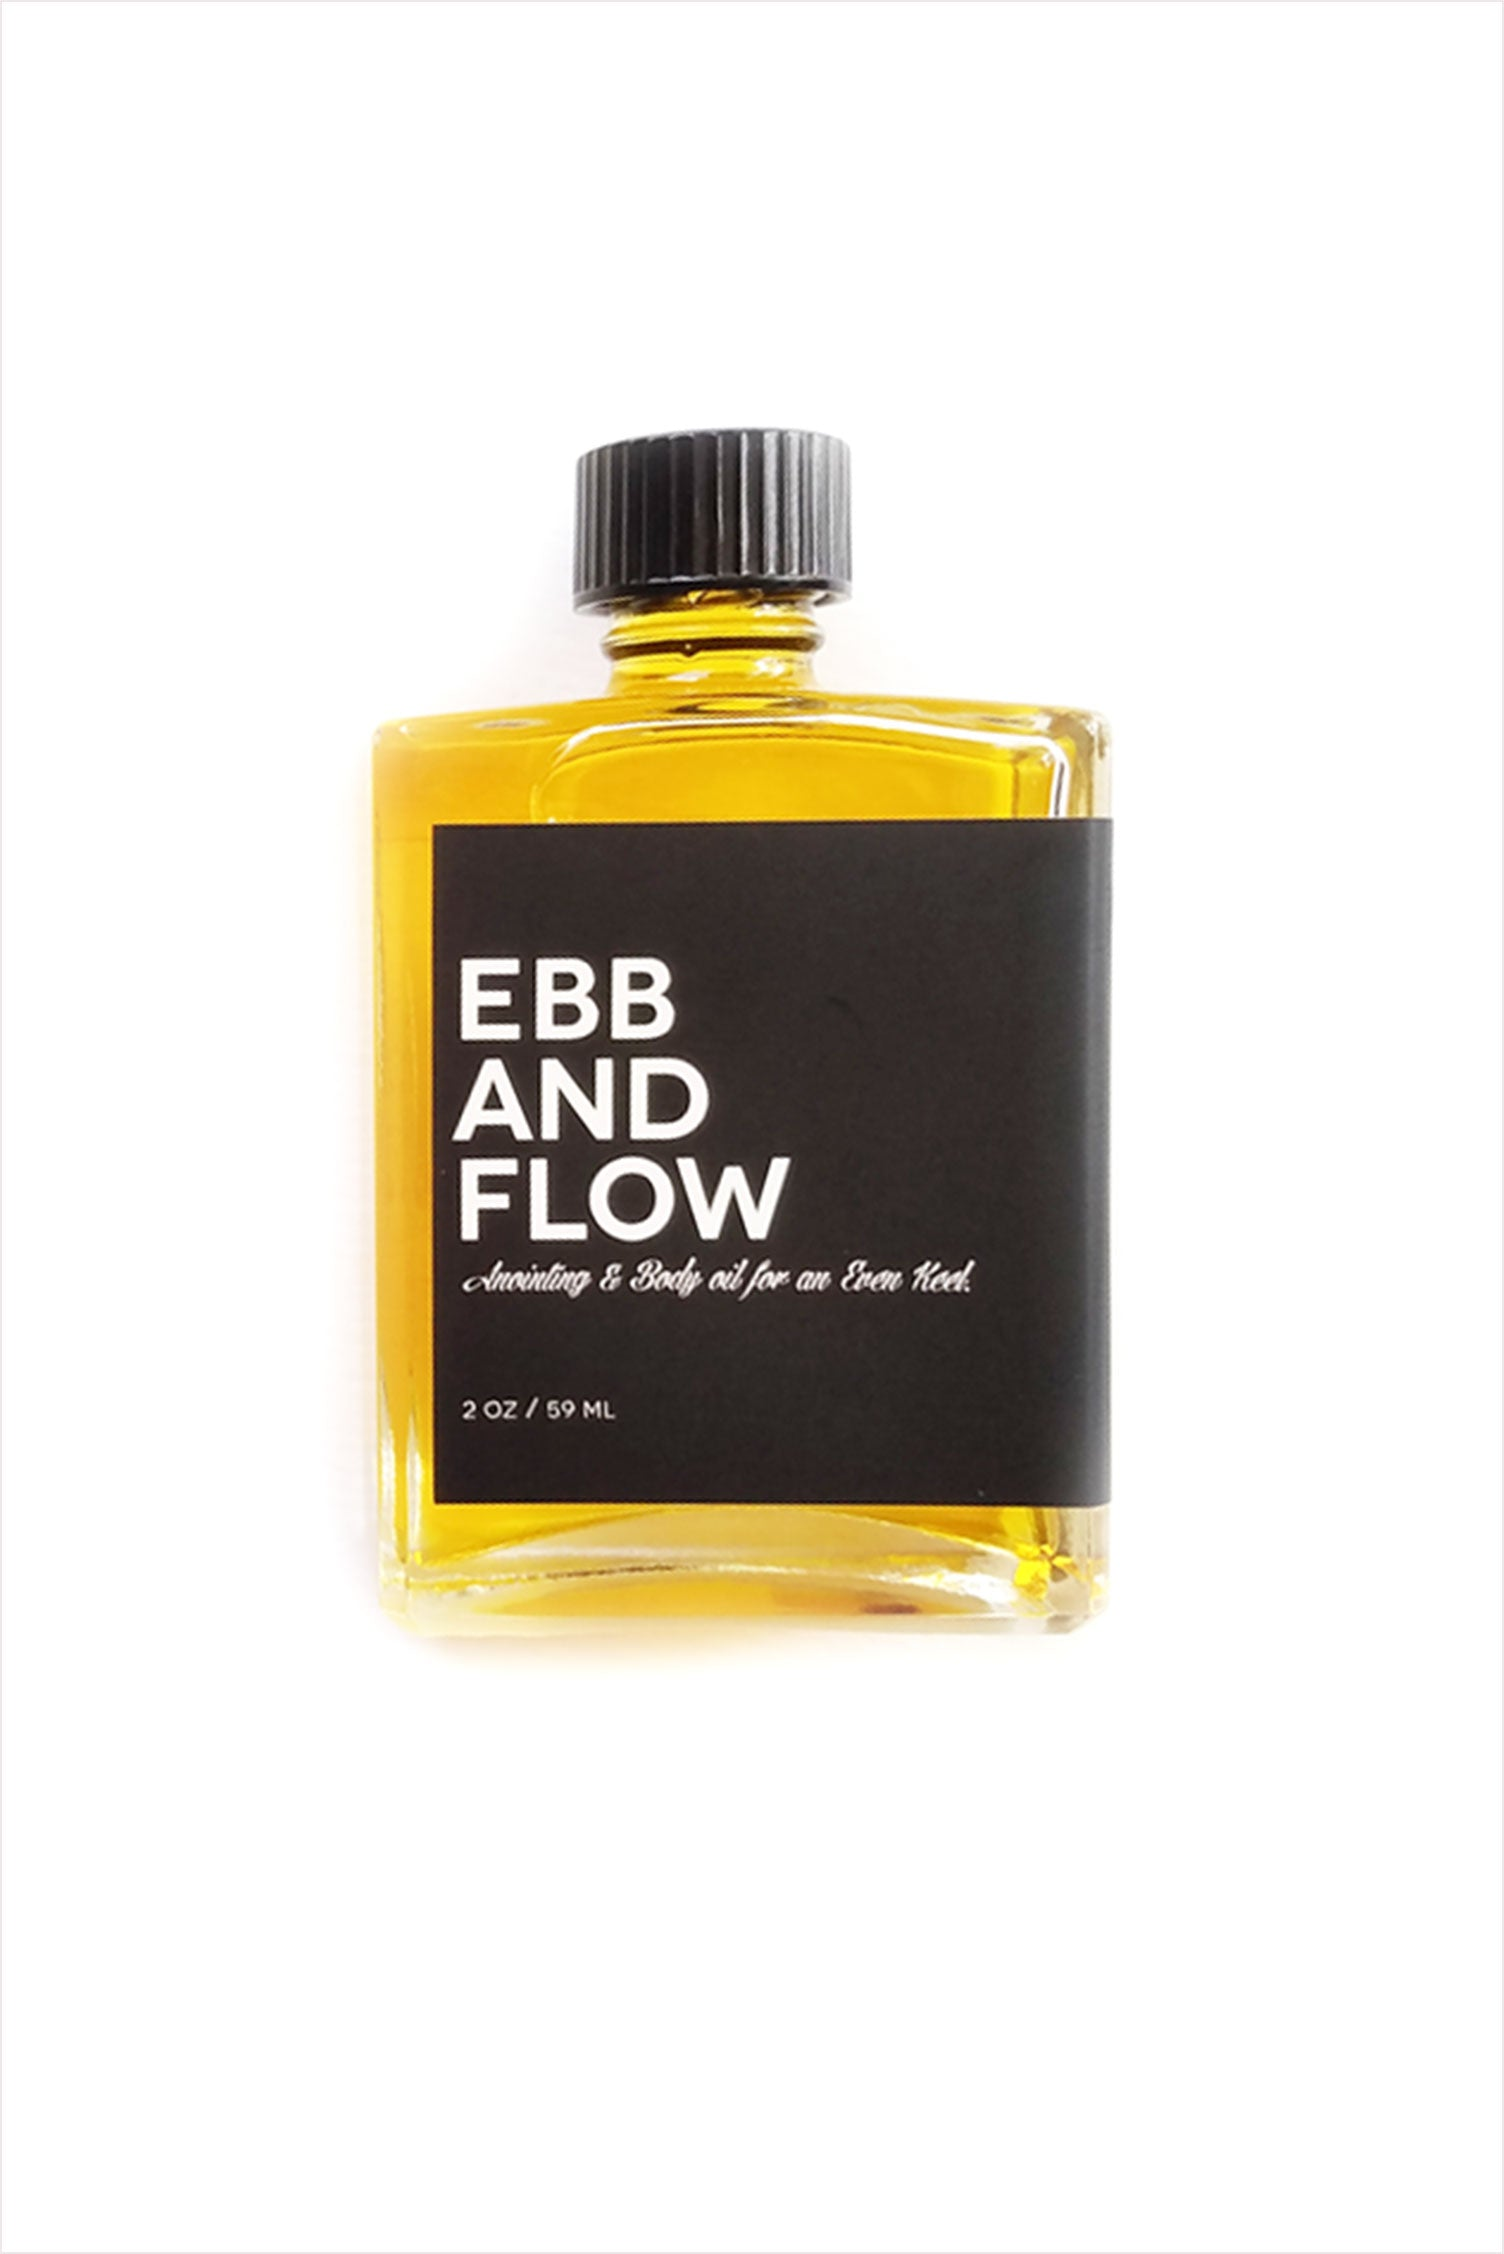 Ebb And Flow - Body Oil